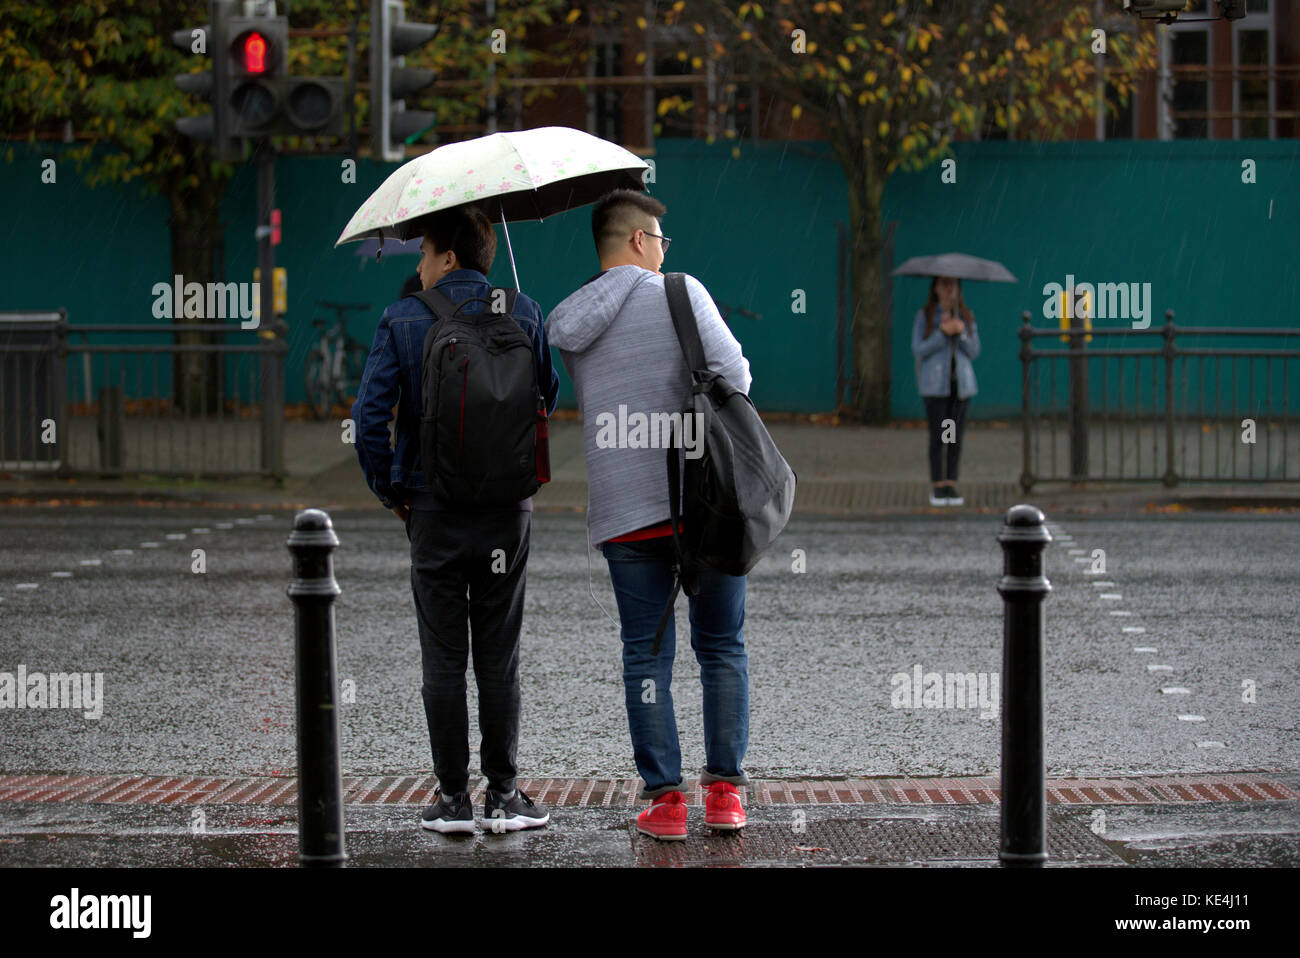 Glasgow, Scotland, UK.16th October.The Met Office issued yellow weather alerts and warned about possible storm damage - Stock Image